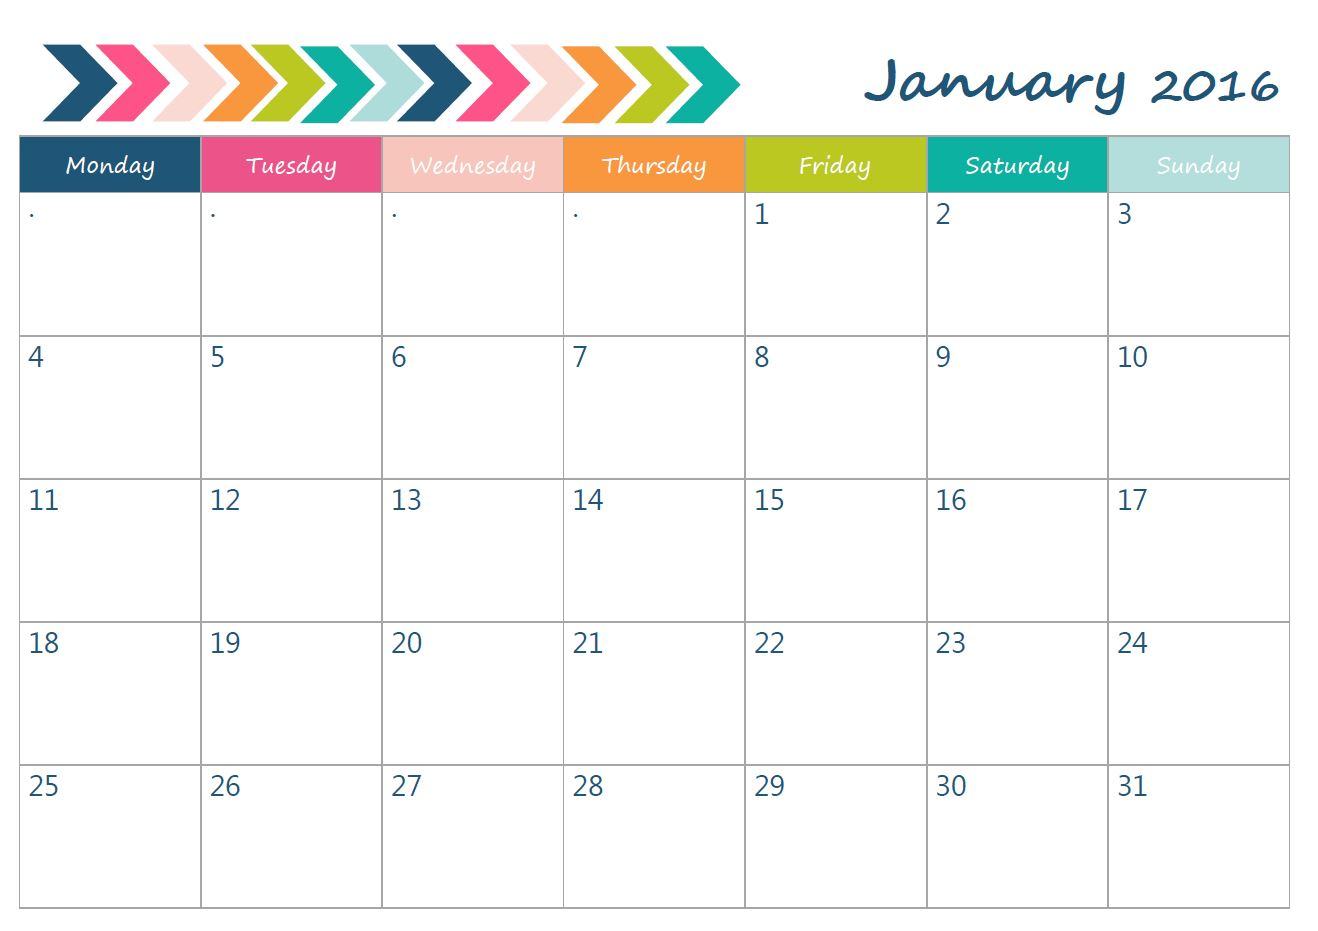 Blank Calendars To Print Without Downloading | Calendar ...